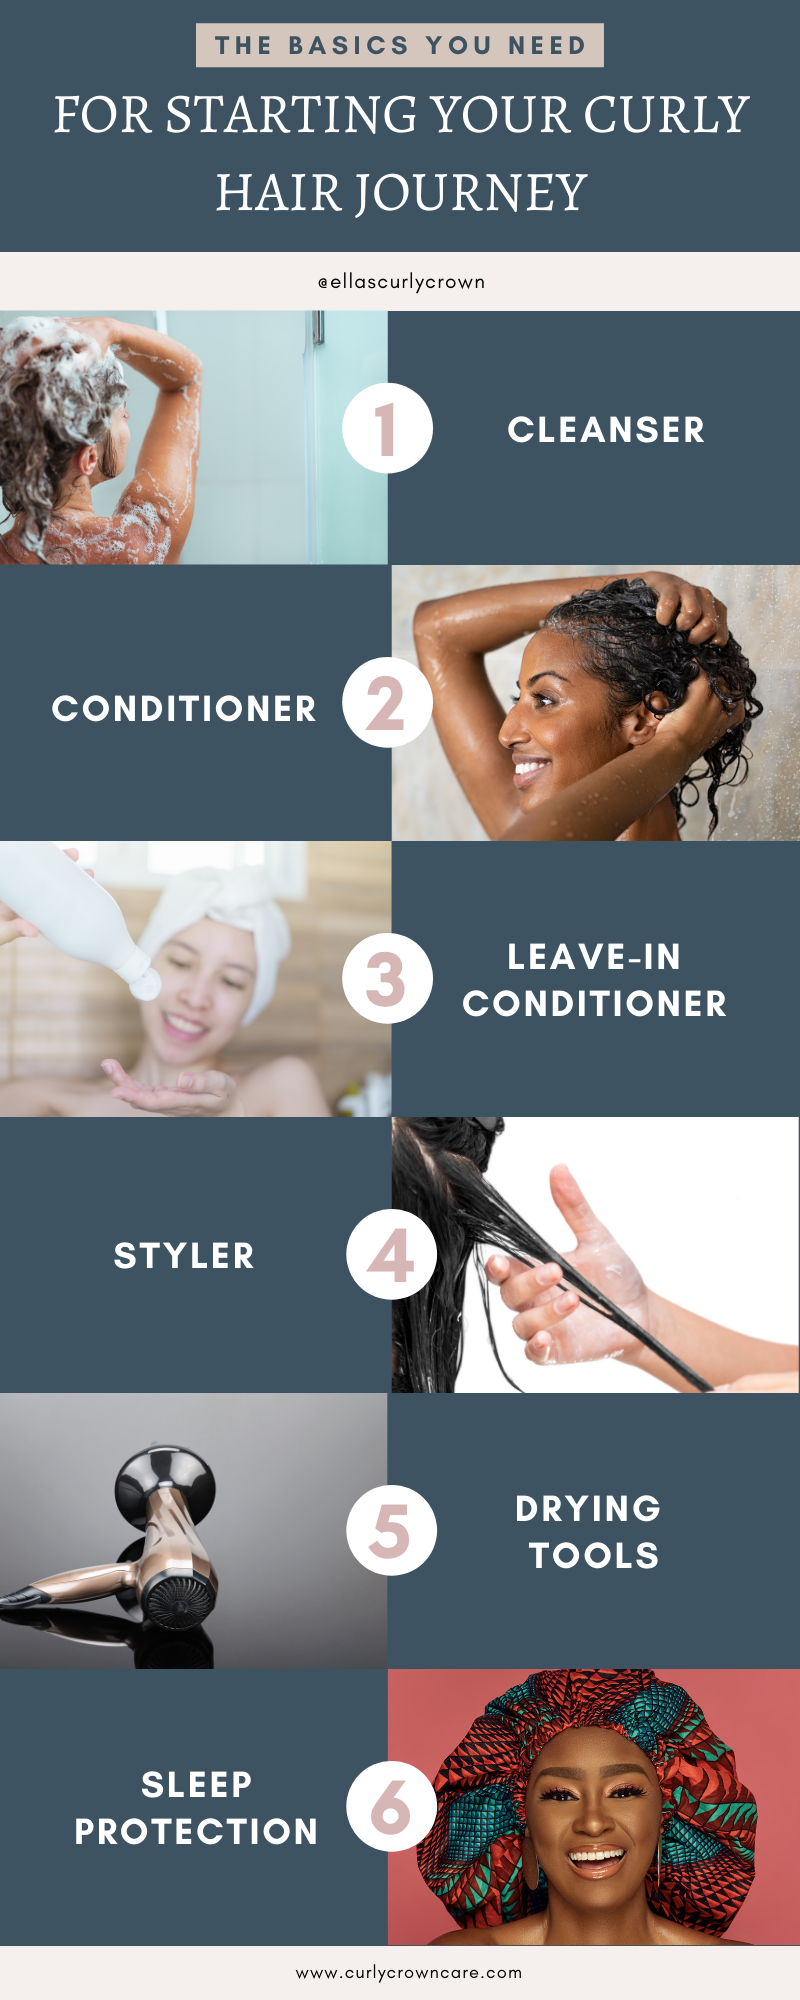 Basics to start your curly hair journey